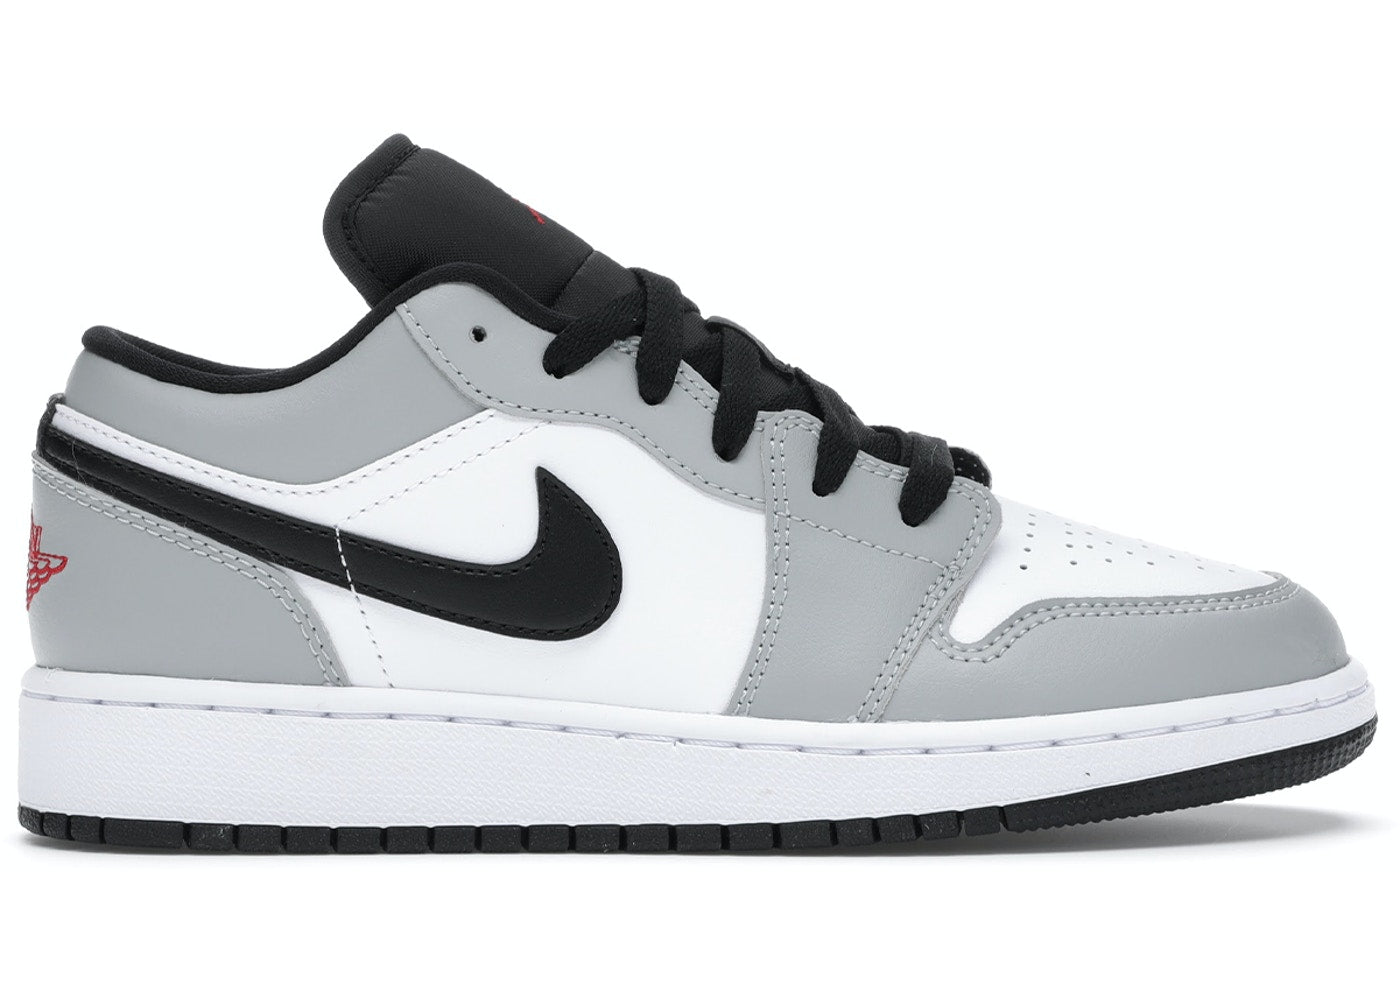 Jordan 1 Low Light Smoke Grey (GS)